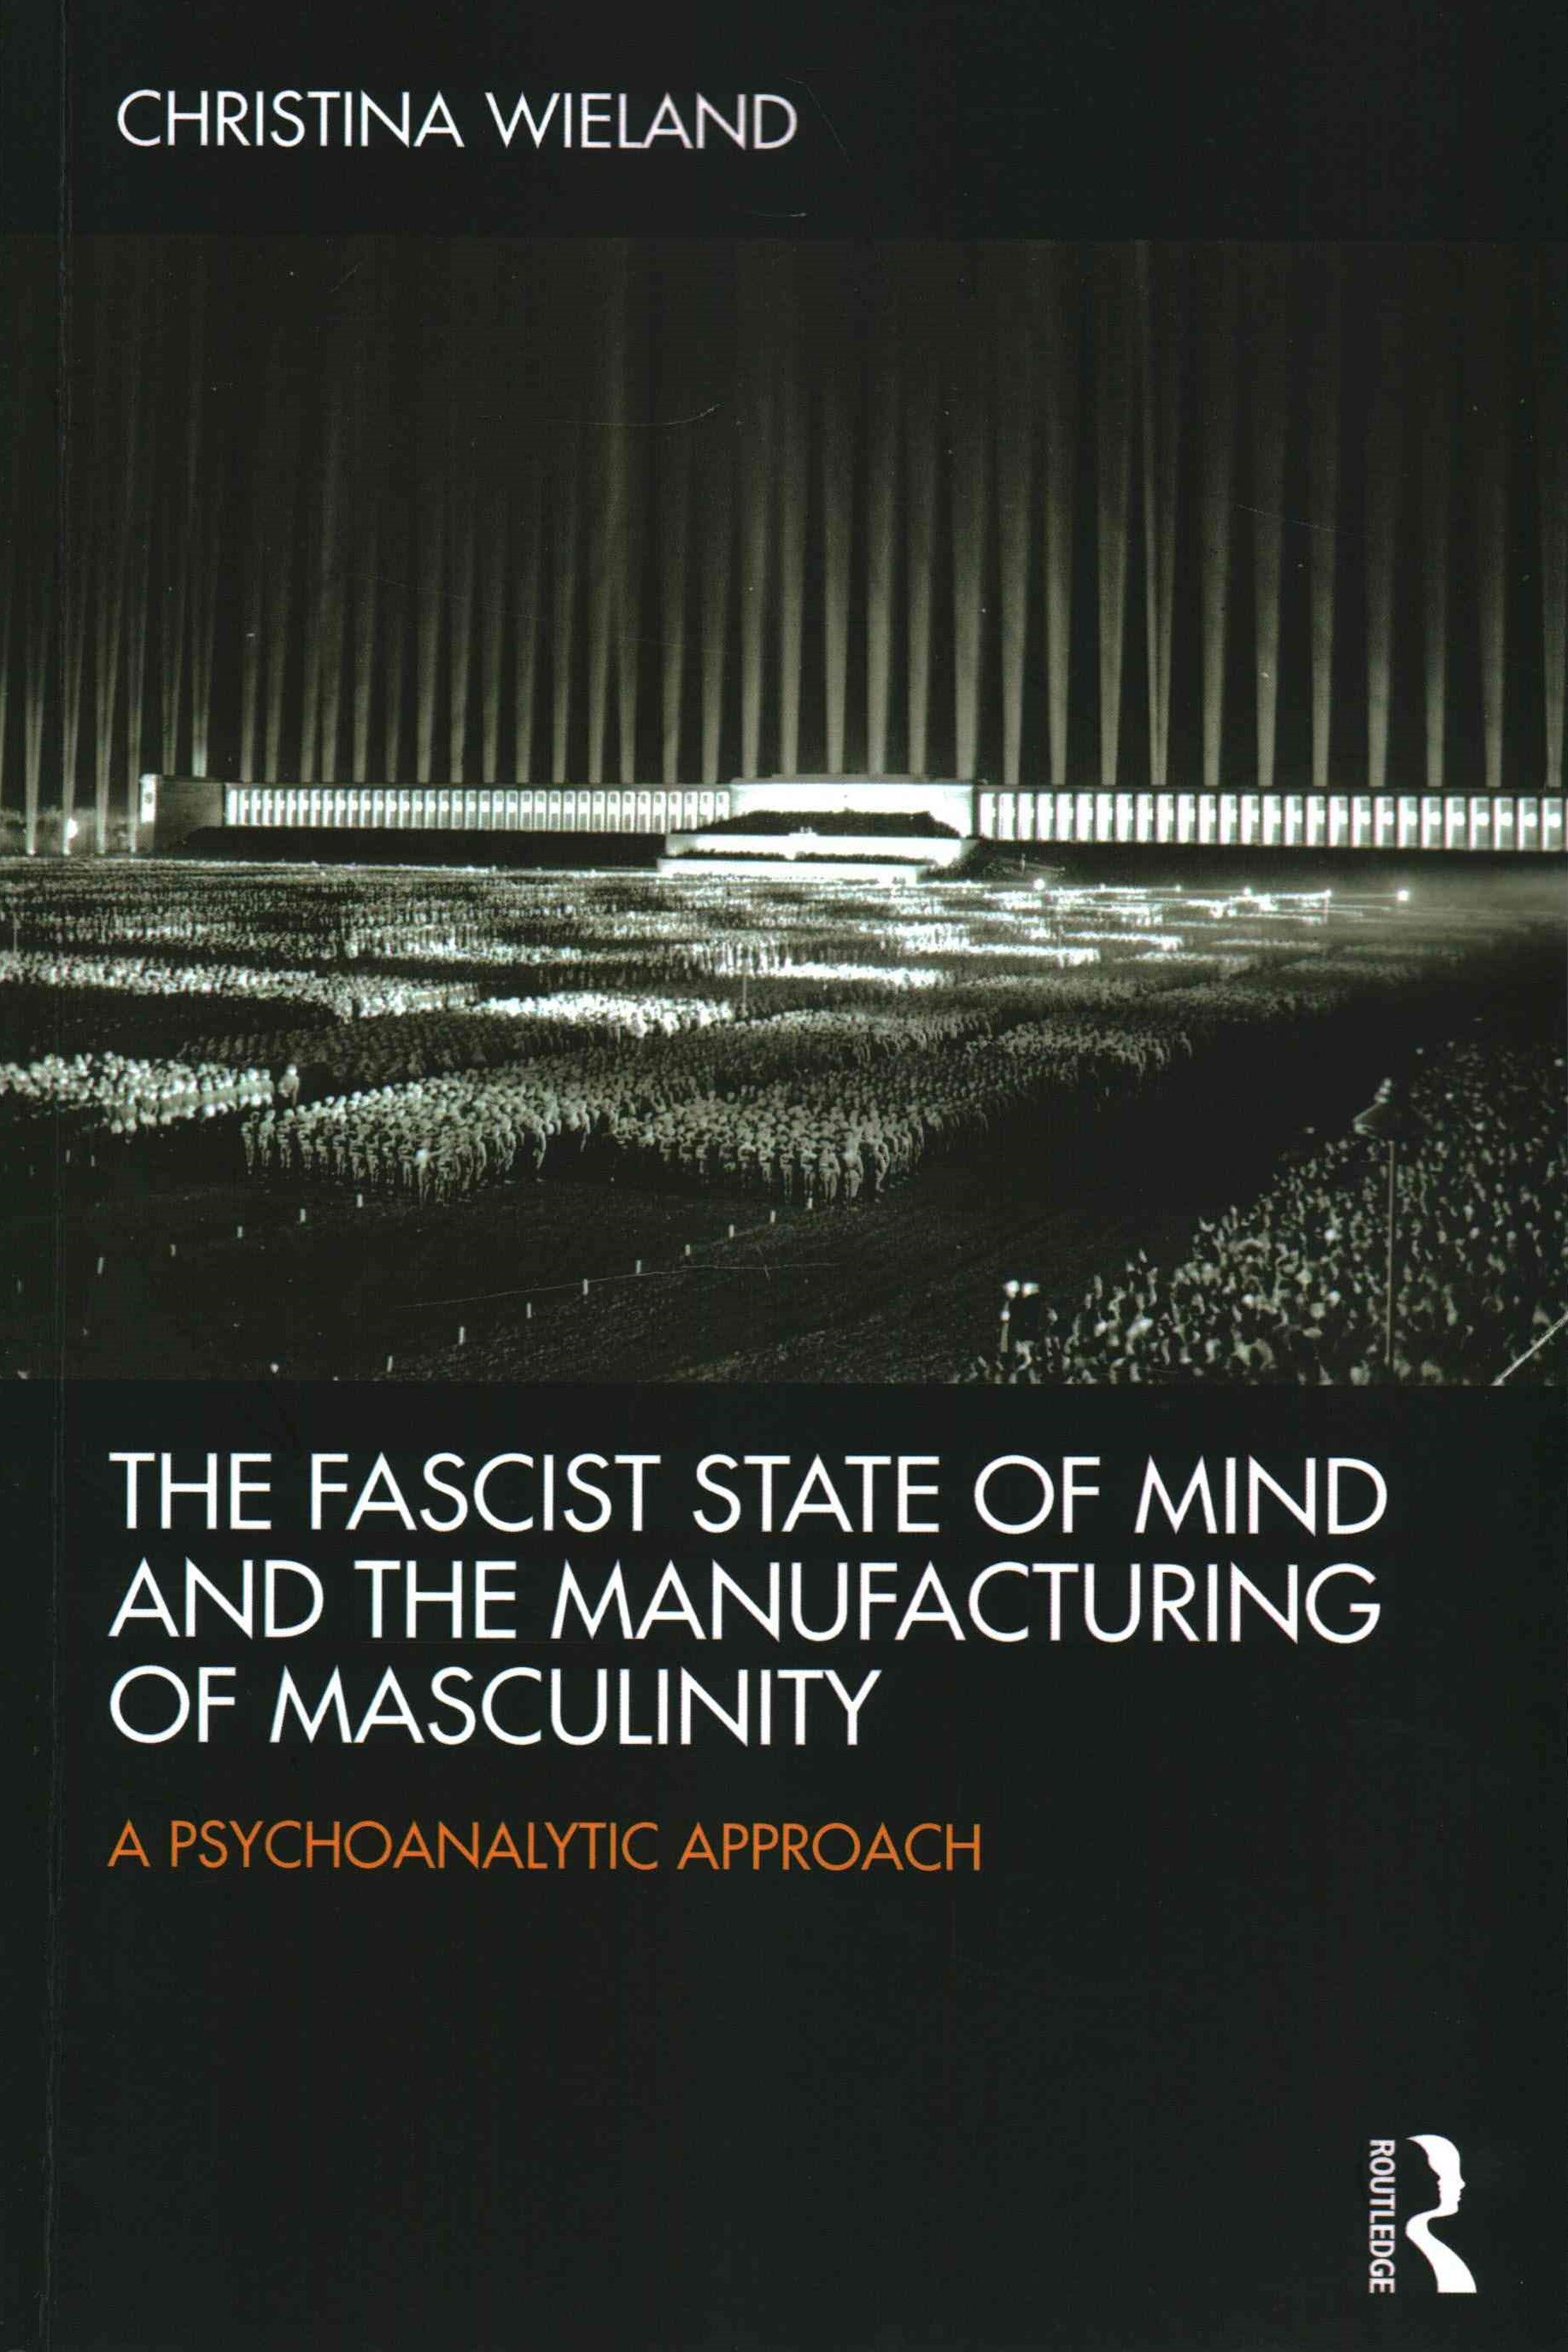 Fascist State of Mind and the Manufacturing of Masculinity